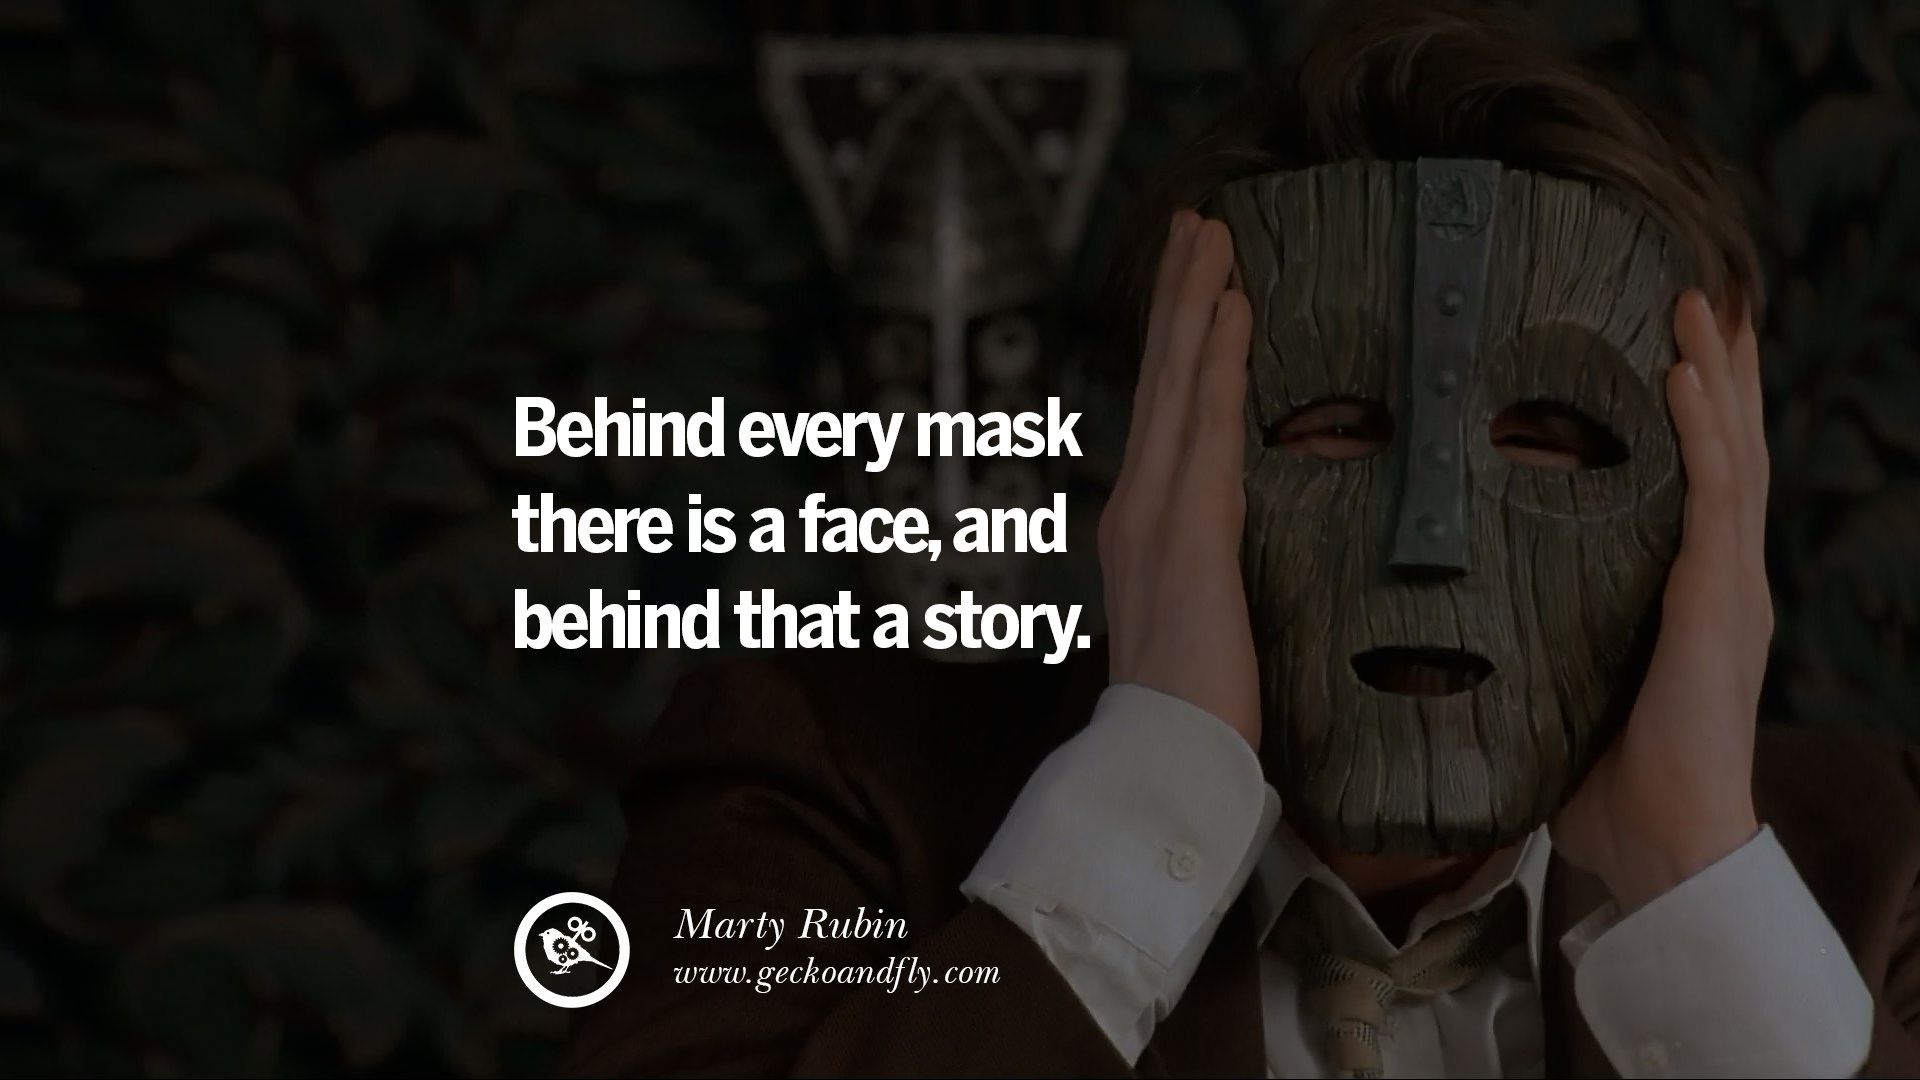 Behind every mask there is a face, and behind that a story ...